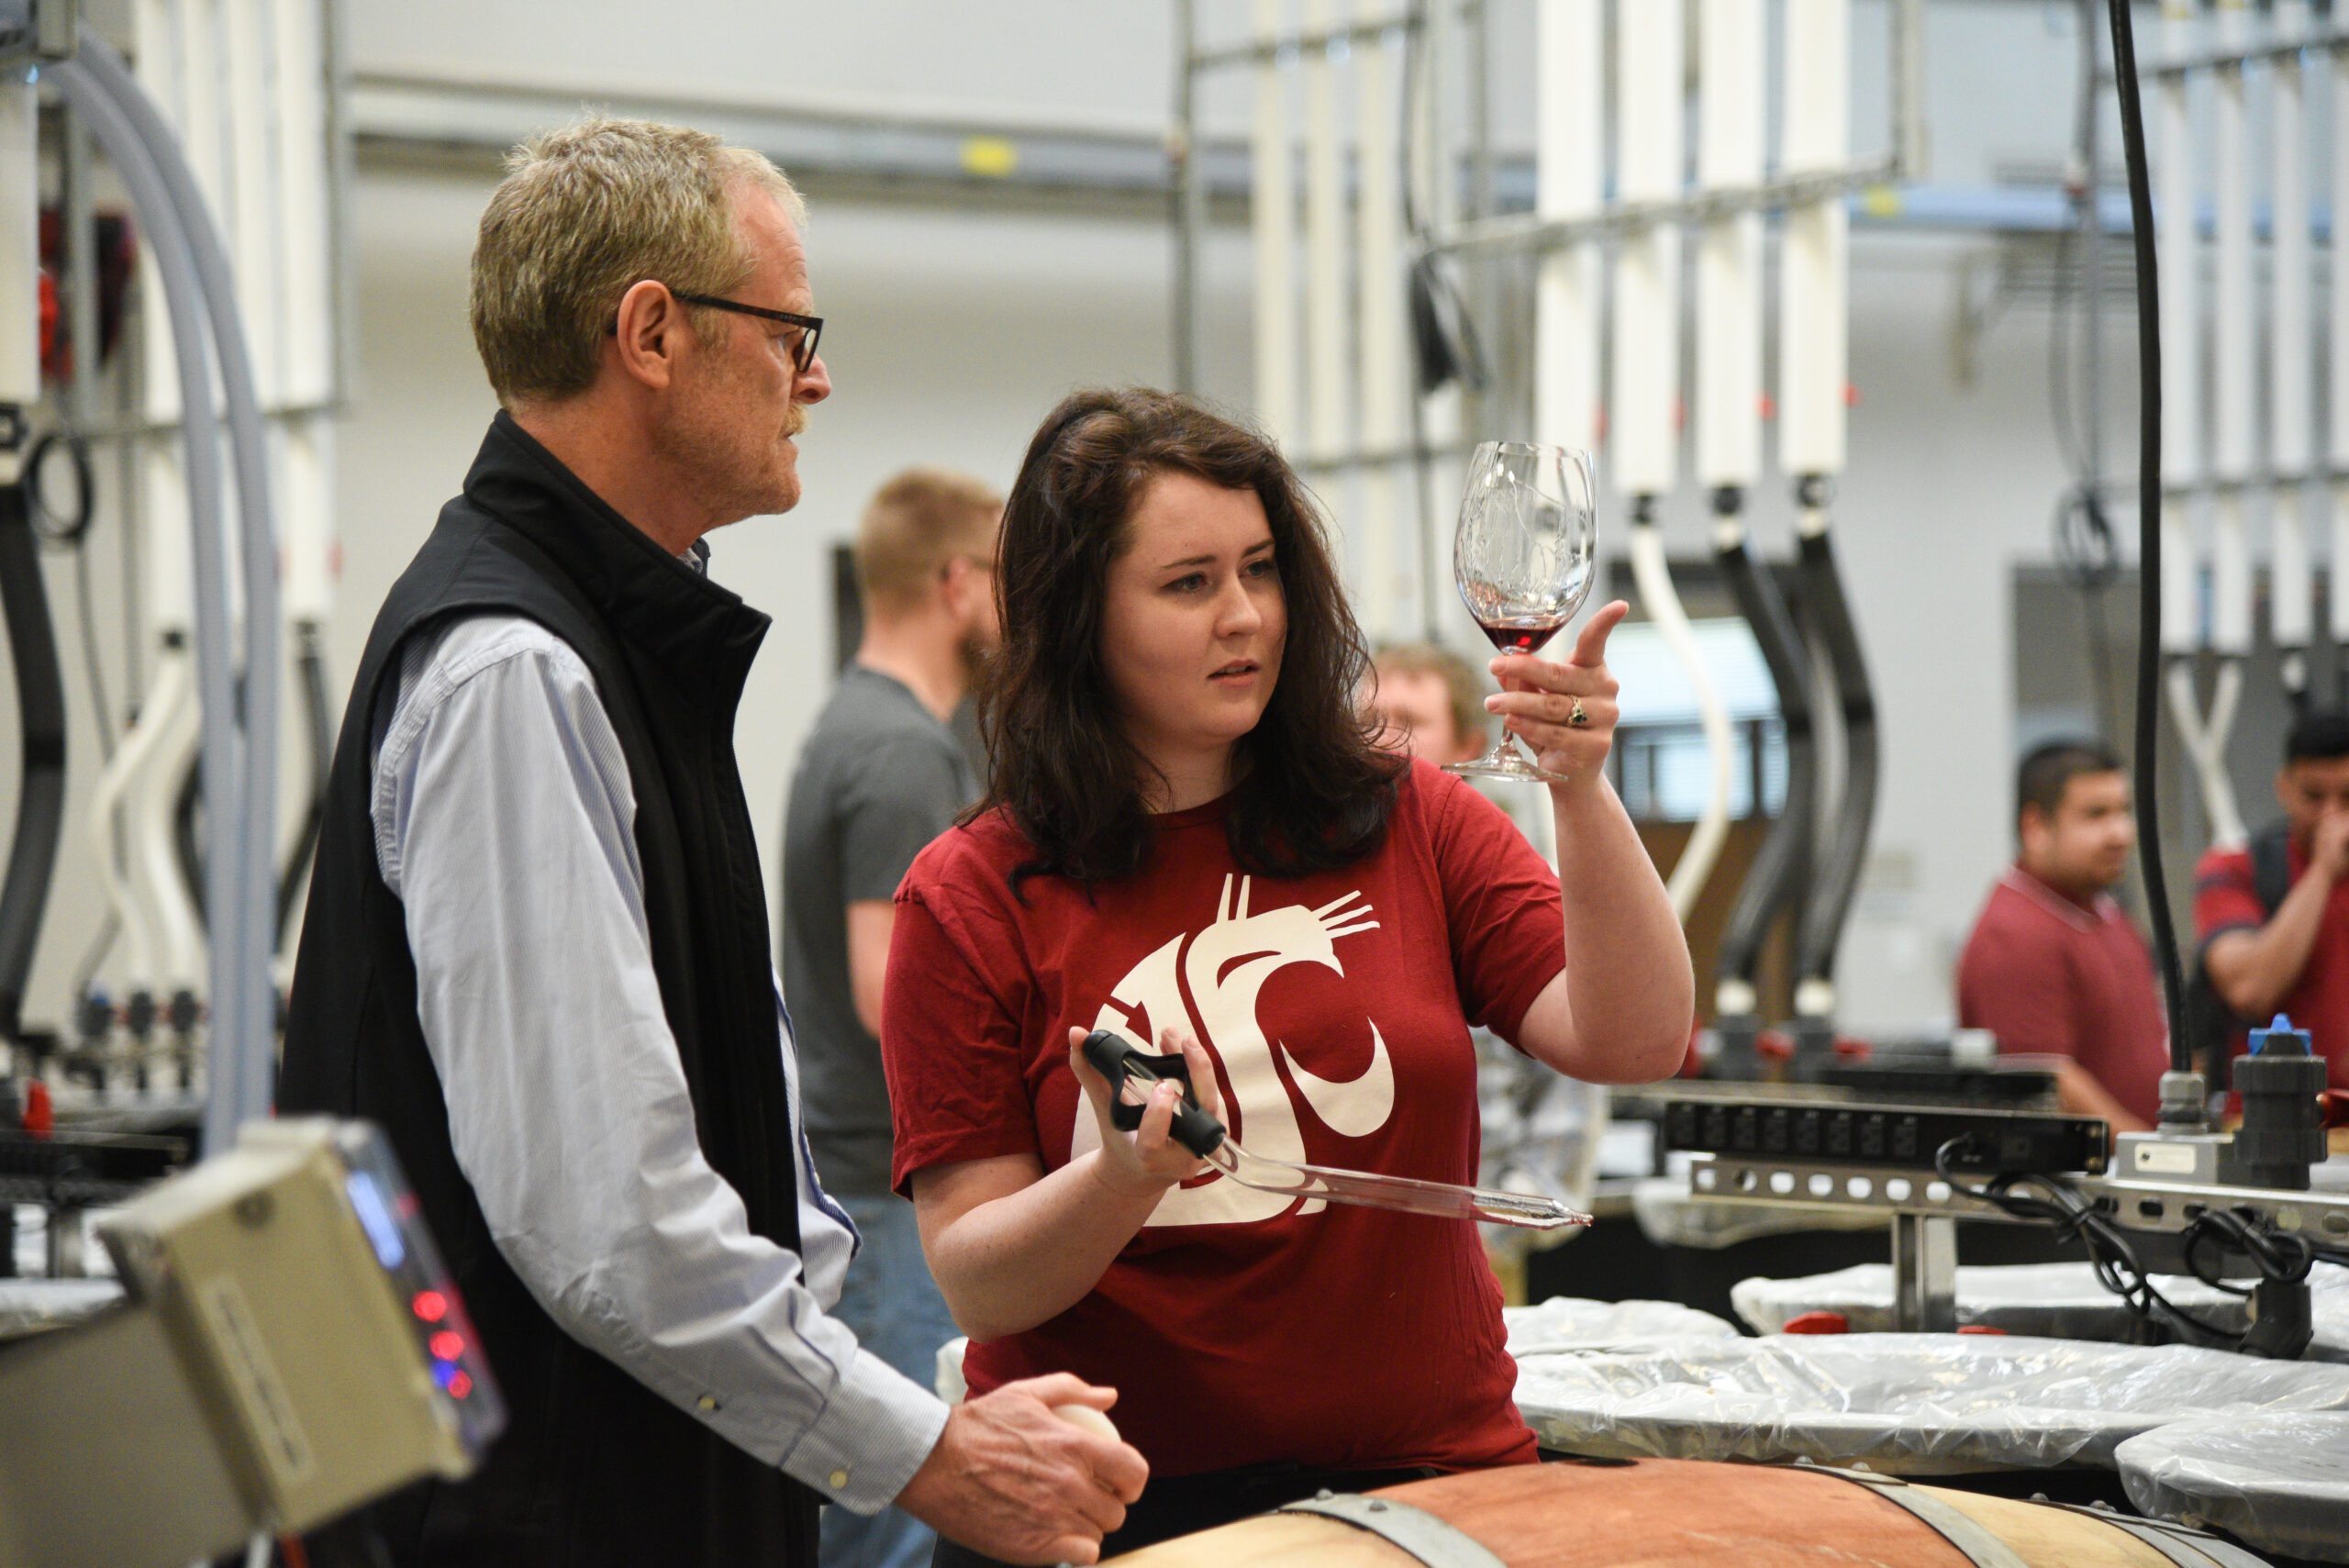 A young woman wearing a red WSU shirt holds a glass with red wine up to eye level and examines it. A man standing next to her wearing a black vest also looks at the glass. The background is a busy lab with tubes and other students.